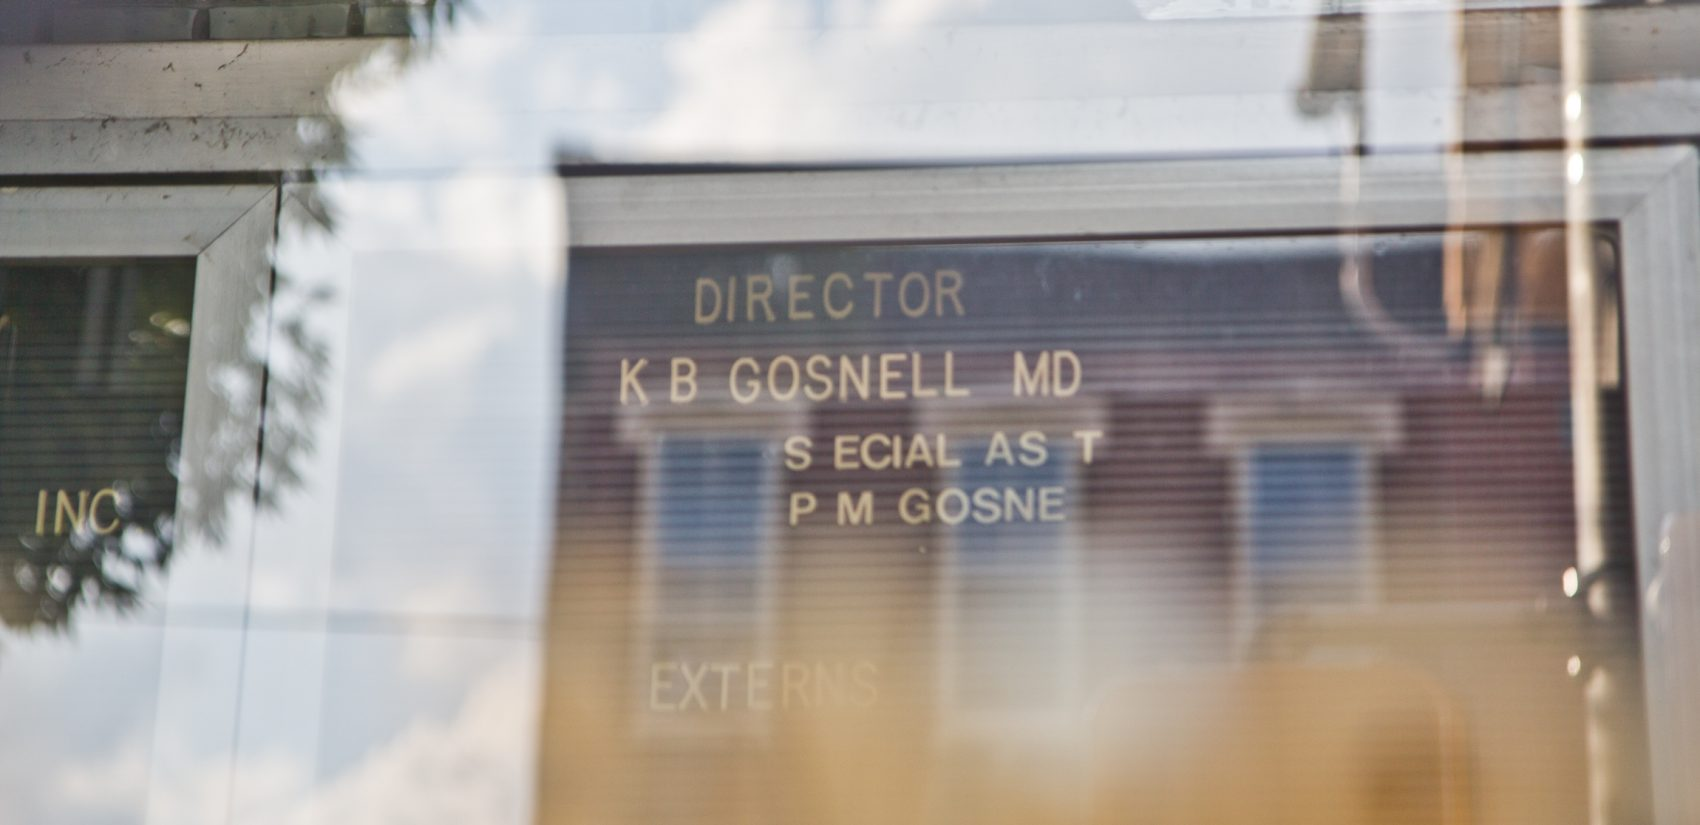 The name of the convicted murderer still adorns the door of the former clinic in West Philadelphia. (Kimberly Paynter/WHYY)